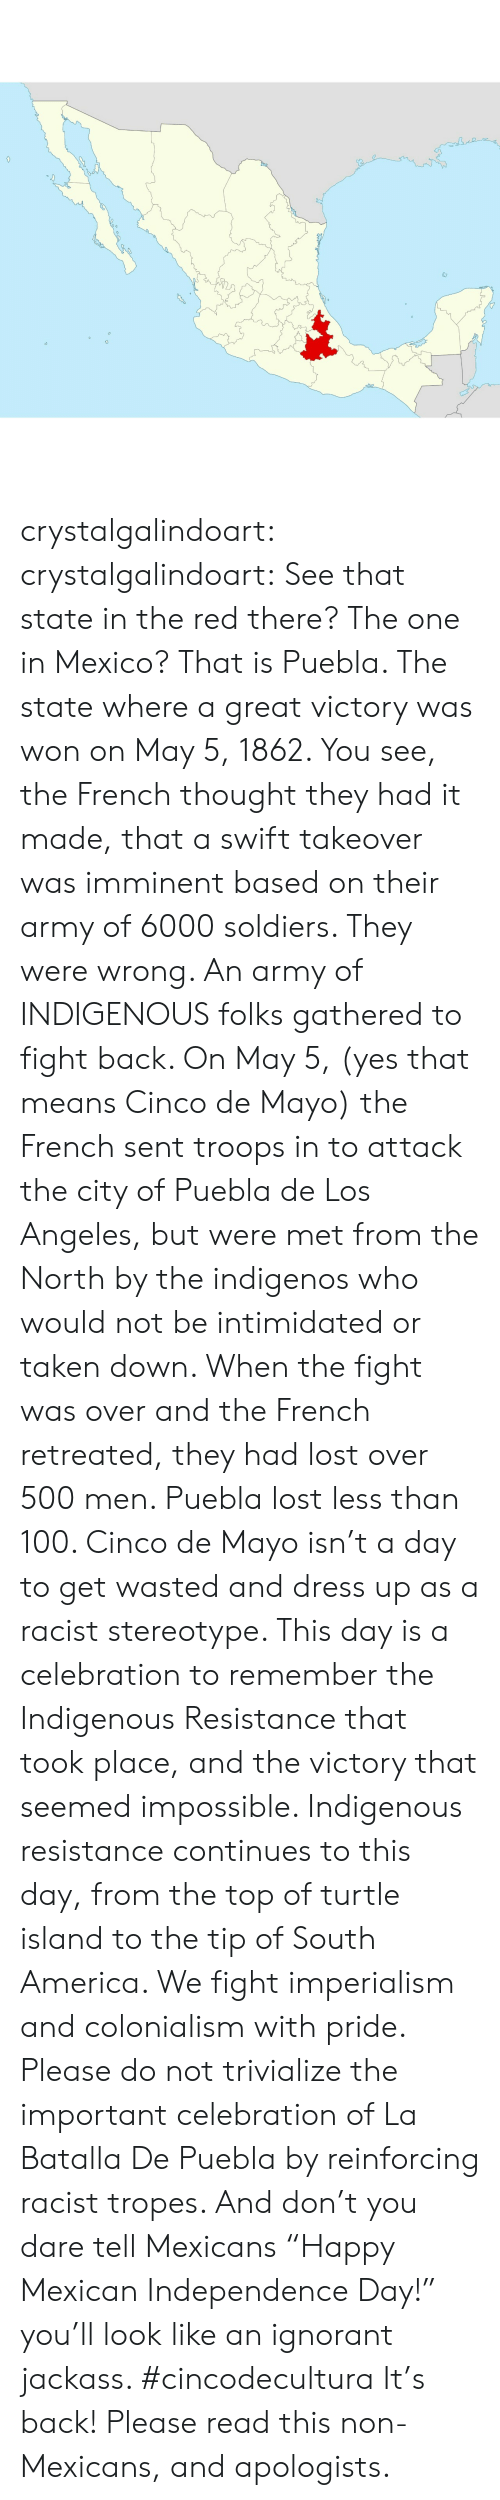 """America, Ignorant, and Independence Day: 40  0 crystalgalindoart:  crystalgalindoart:  See that state in the red there? The one in Mexico? That is Puebla. The state where a great victory was won on May 5, 1862. You see, the French thought they had it made, that a swift takeover was imminent based on their army of 6000 soldiers. They were wrong. An army of INDIGENOUS folks gathered to fight back. On May 5, (yes that means Cinco de Mayo) the French sent troops in to attack the city of Puebla de Los Angeles, but were met from the North by the indigenos who would not be intimidated or taken down. When the fight was over and the French retreated, they had lost over 500 men. Puebla lost less than 100.  Cinco de Mayo isn't a day to get wasted and dress up as a racist stereotype. This day is a celebration to remember the Indigenous Resistance that took place, and the victory that seemed impossible. Indigenous resistance continues to this day, from the top of turtle island to the tip of South America. We fight imperialism and colonialism with pride. Please do not trivialize the important celebration of La Batalla De Puebla by reinforcing racist tropes. And don't you dare tell Mexicans """"Happy Mexican Independence Day!"""" you'll look like an ignorant jackass. #cincodecultura   It's back! Please read this non- Mexicans, and apologists."""